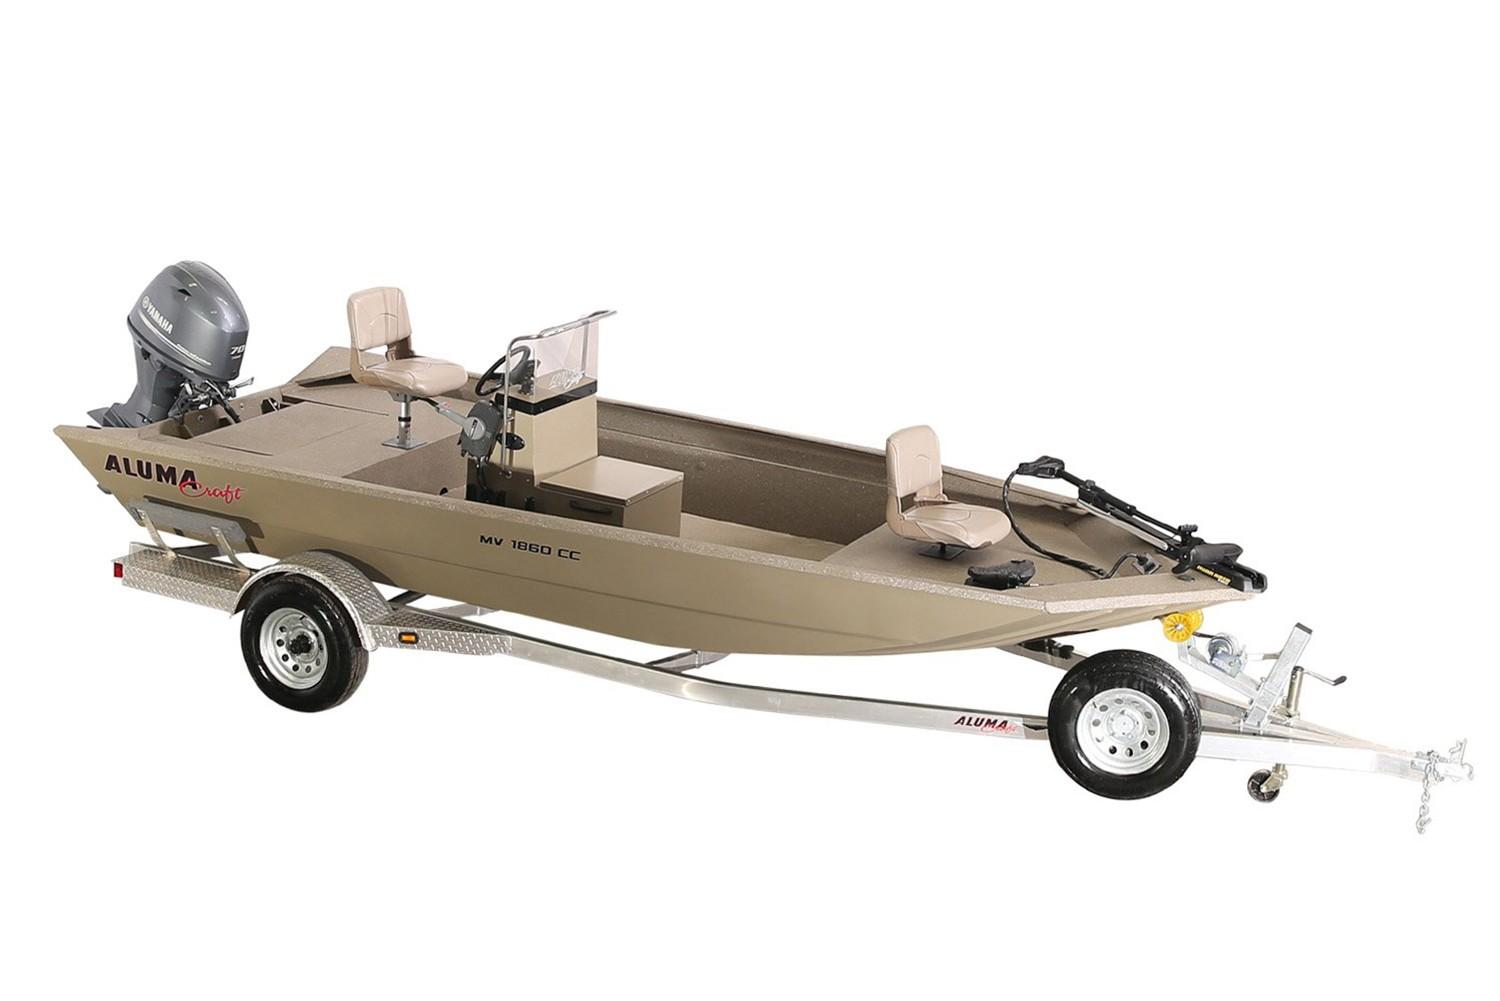 2019 Alumacraft MV 1860 AW CC in Madera, California